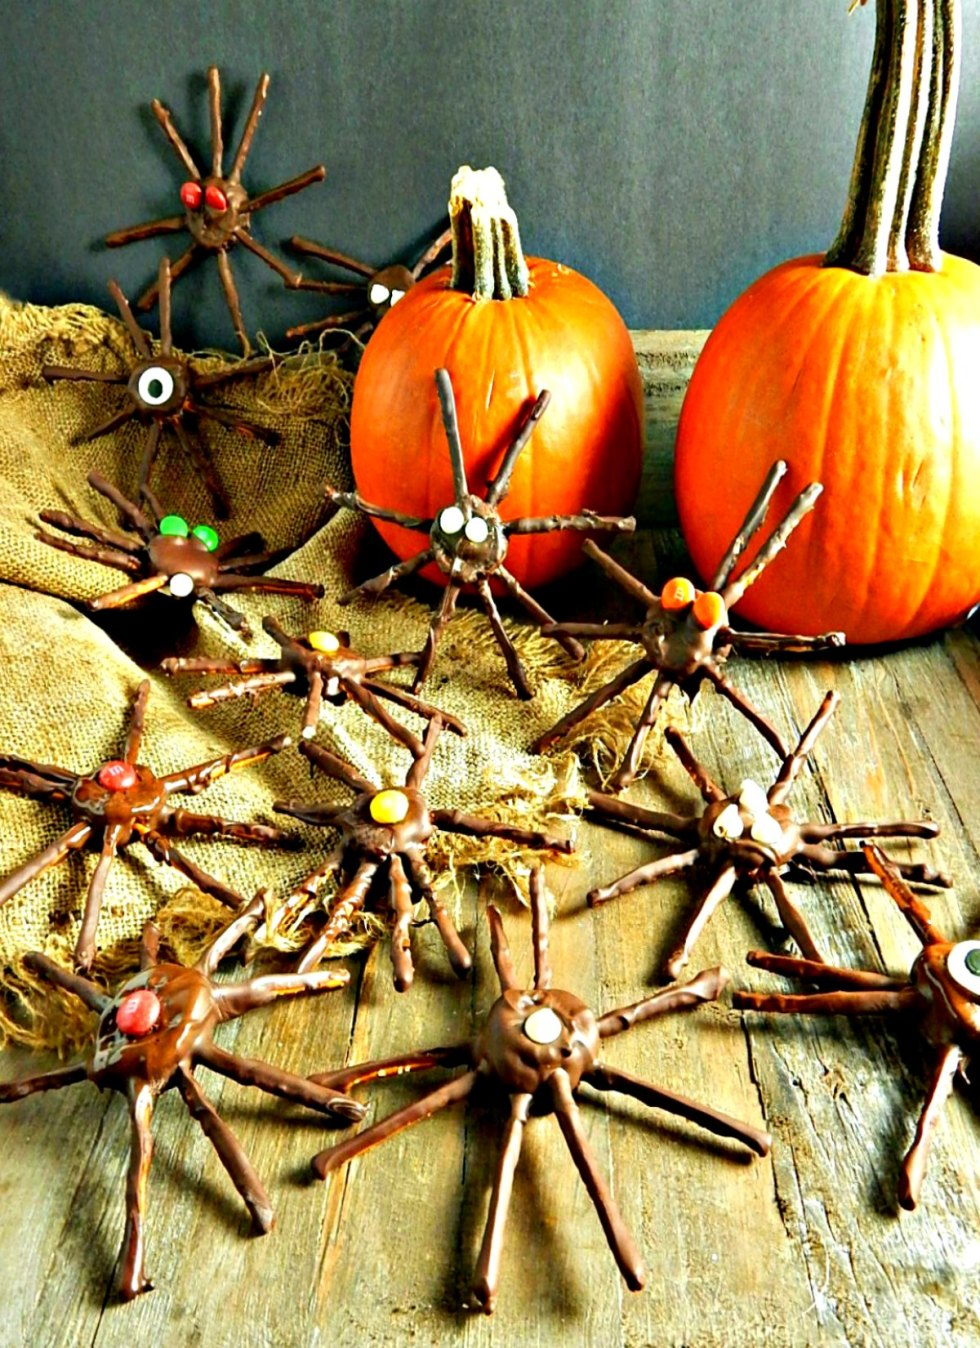 Chocolate Dipped Halloween Spiders